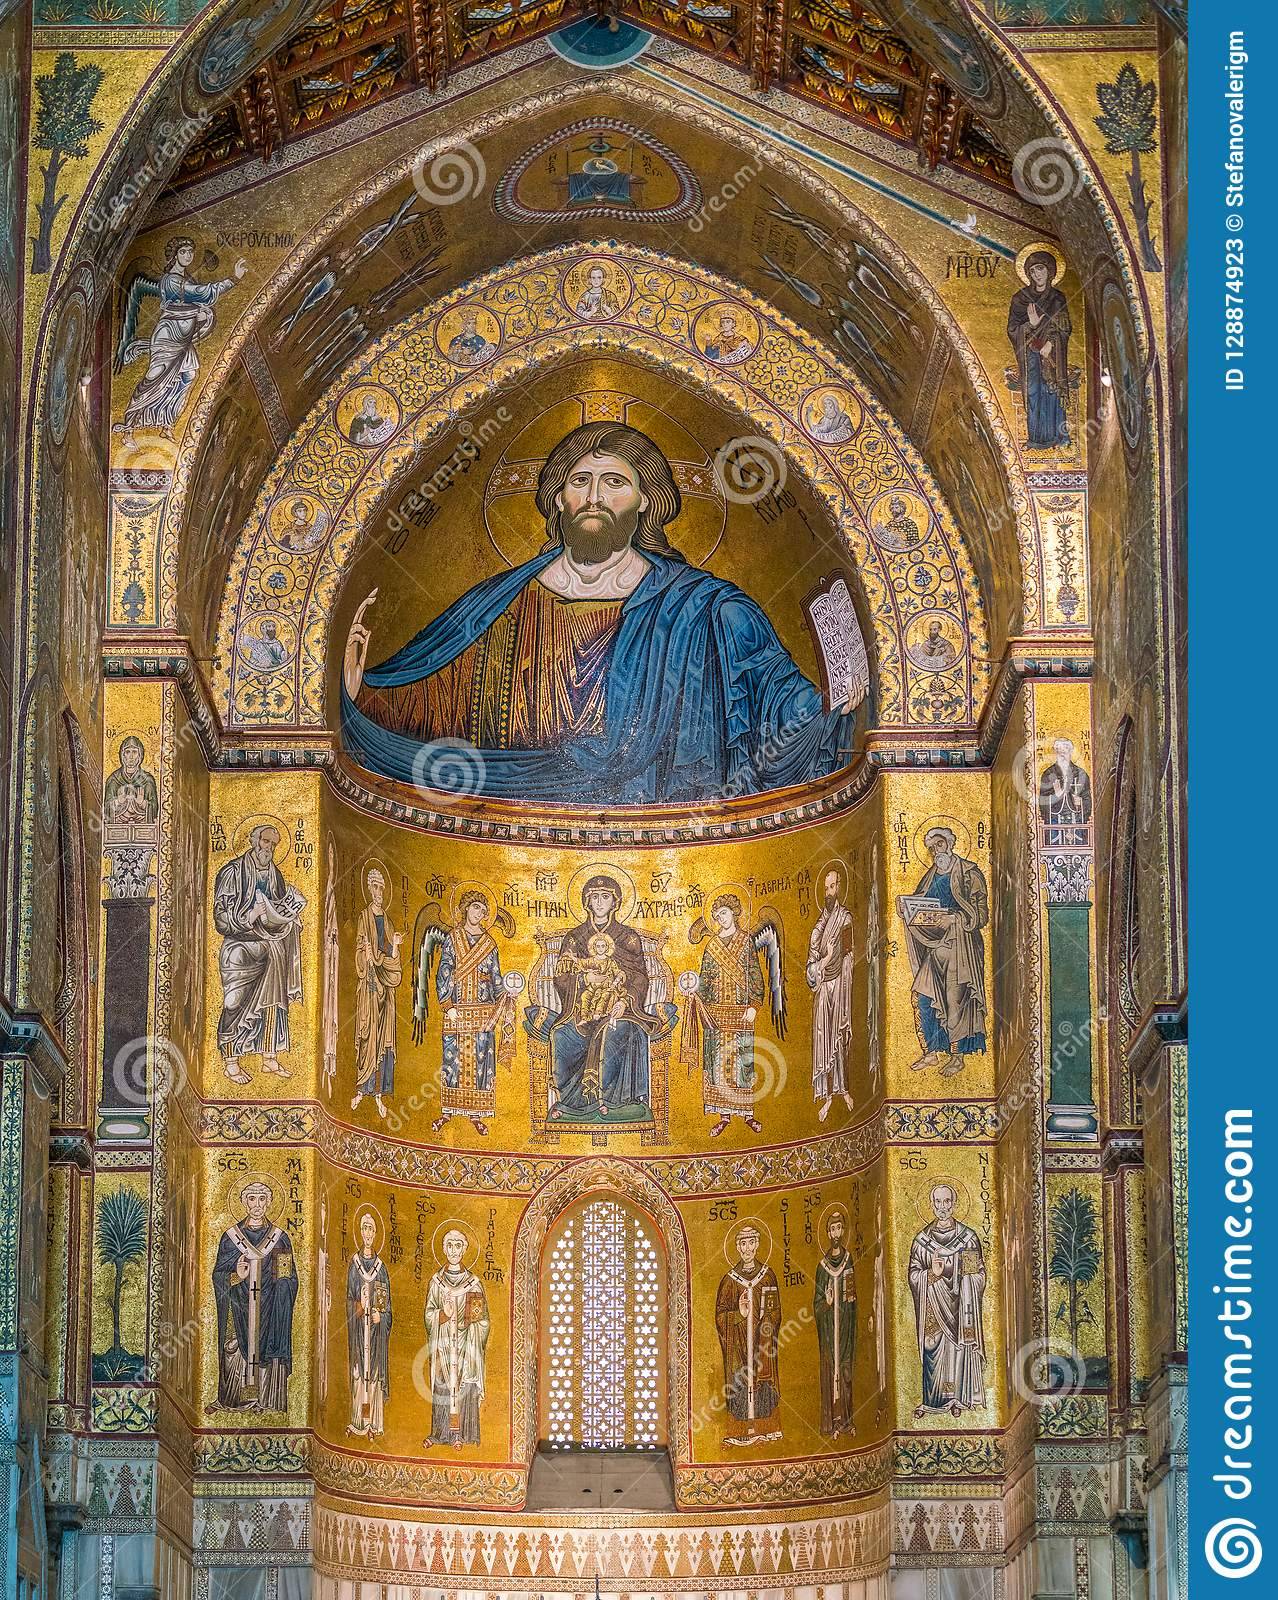 Golden mosaic in the apse of Cathedral of Monreale, in the province of Palermo. Sicily, southern Italy.